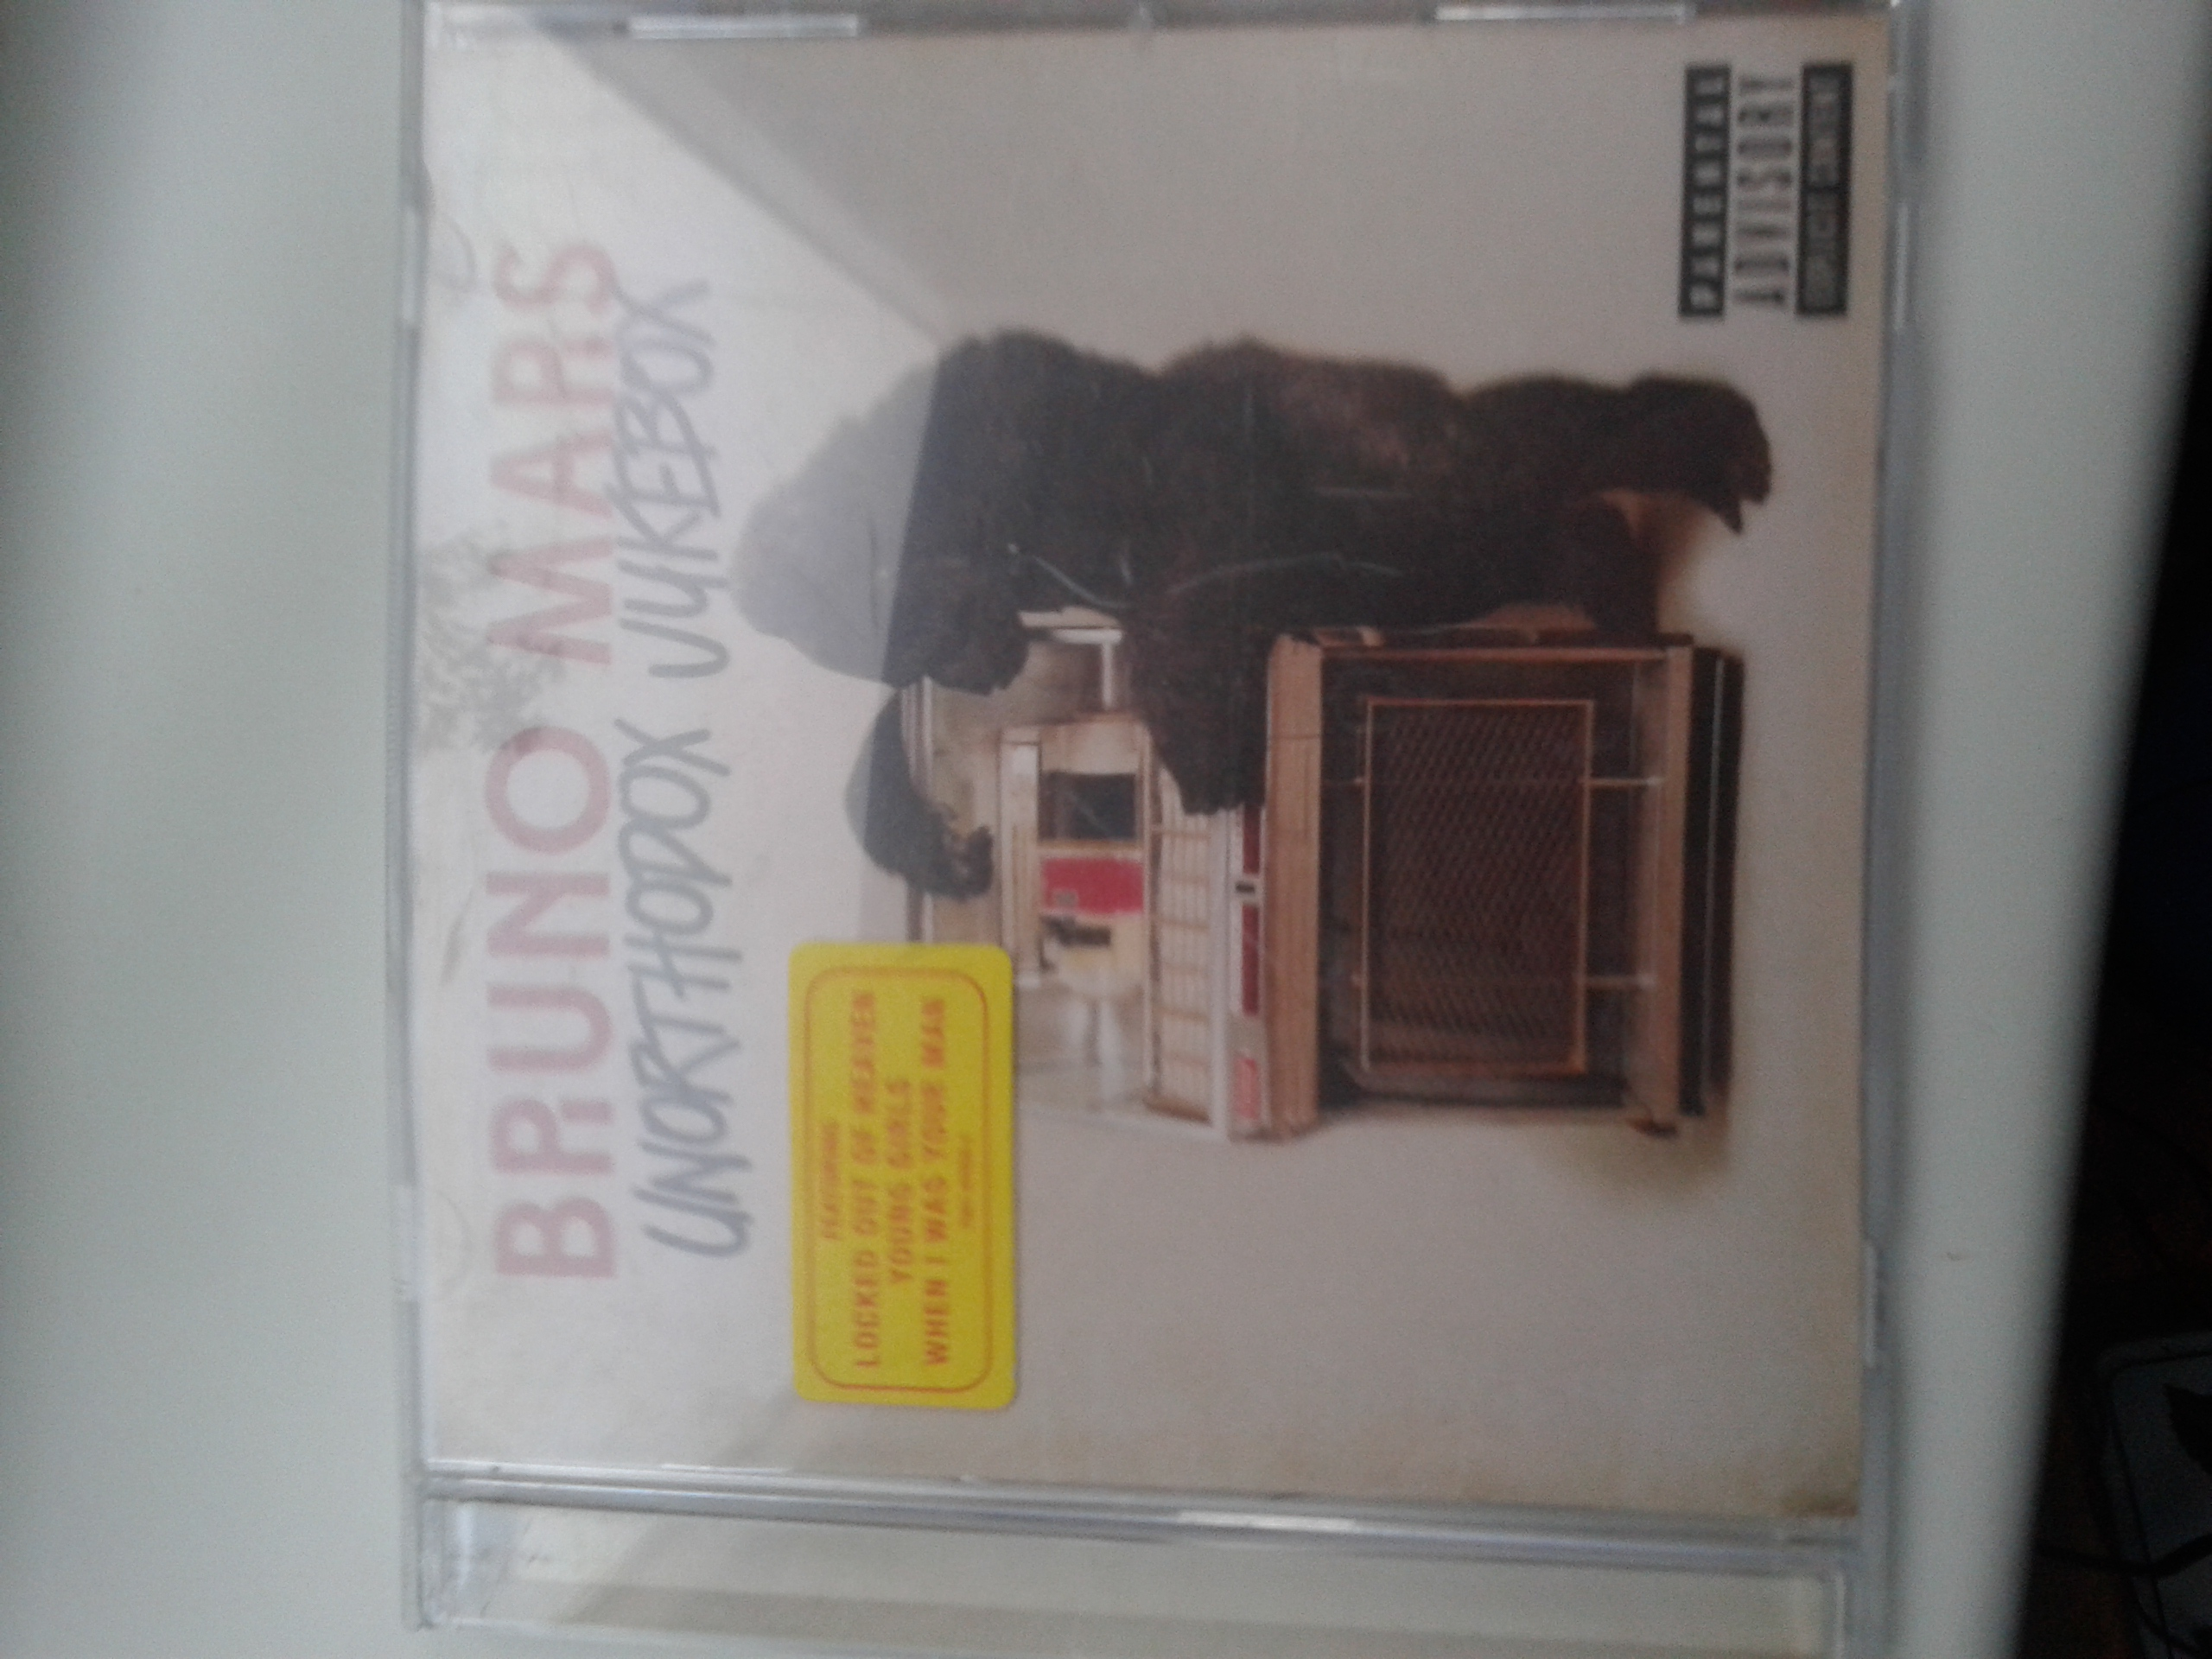 Next CD Is Bruno Mars Latest Album - Unorthodox Jukebox This album is a must have because it has different types of songs some slower and calmer than others and some you will be dancing on your high feet and singing the words cause they are that catchy. Featuring the singles Treasure and Young Girls